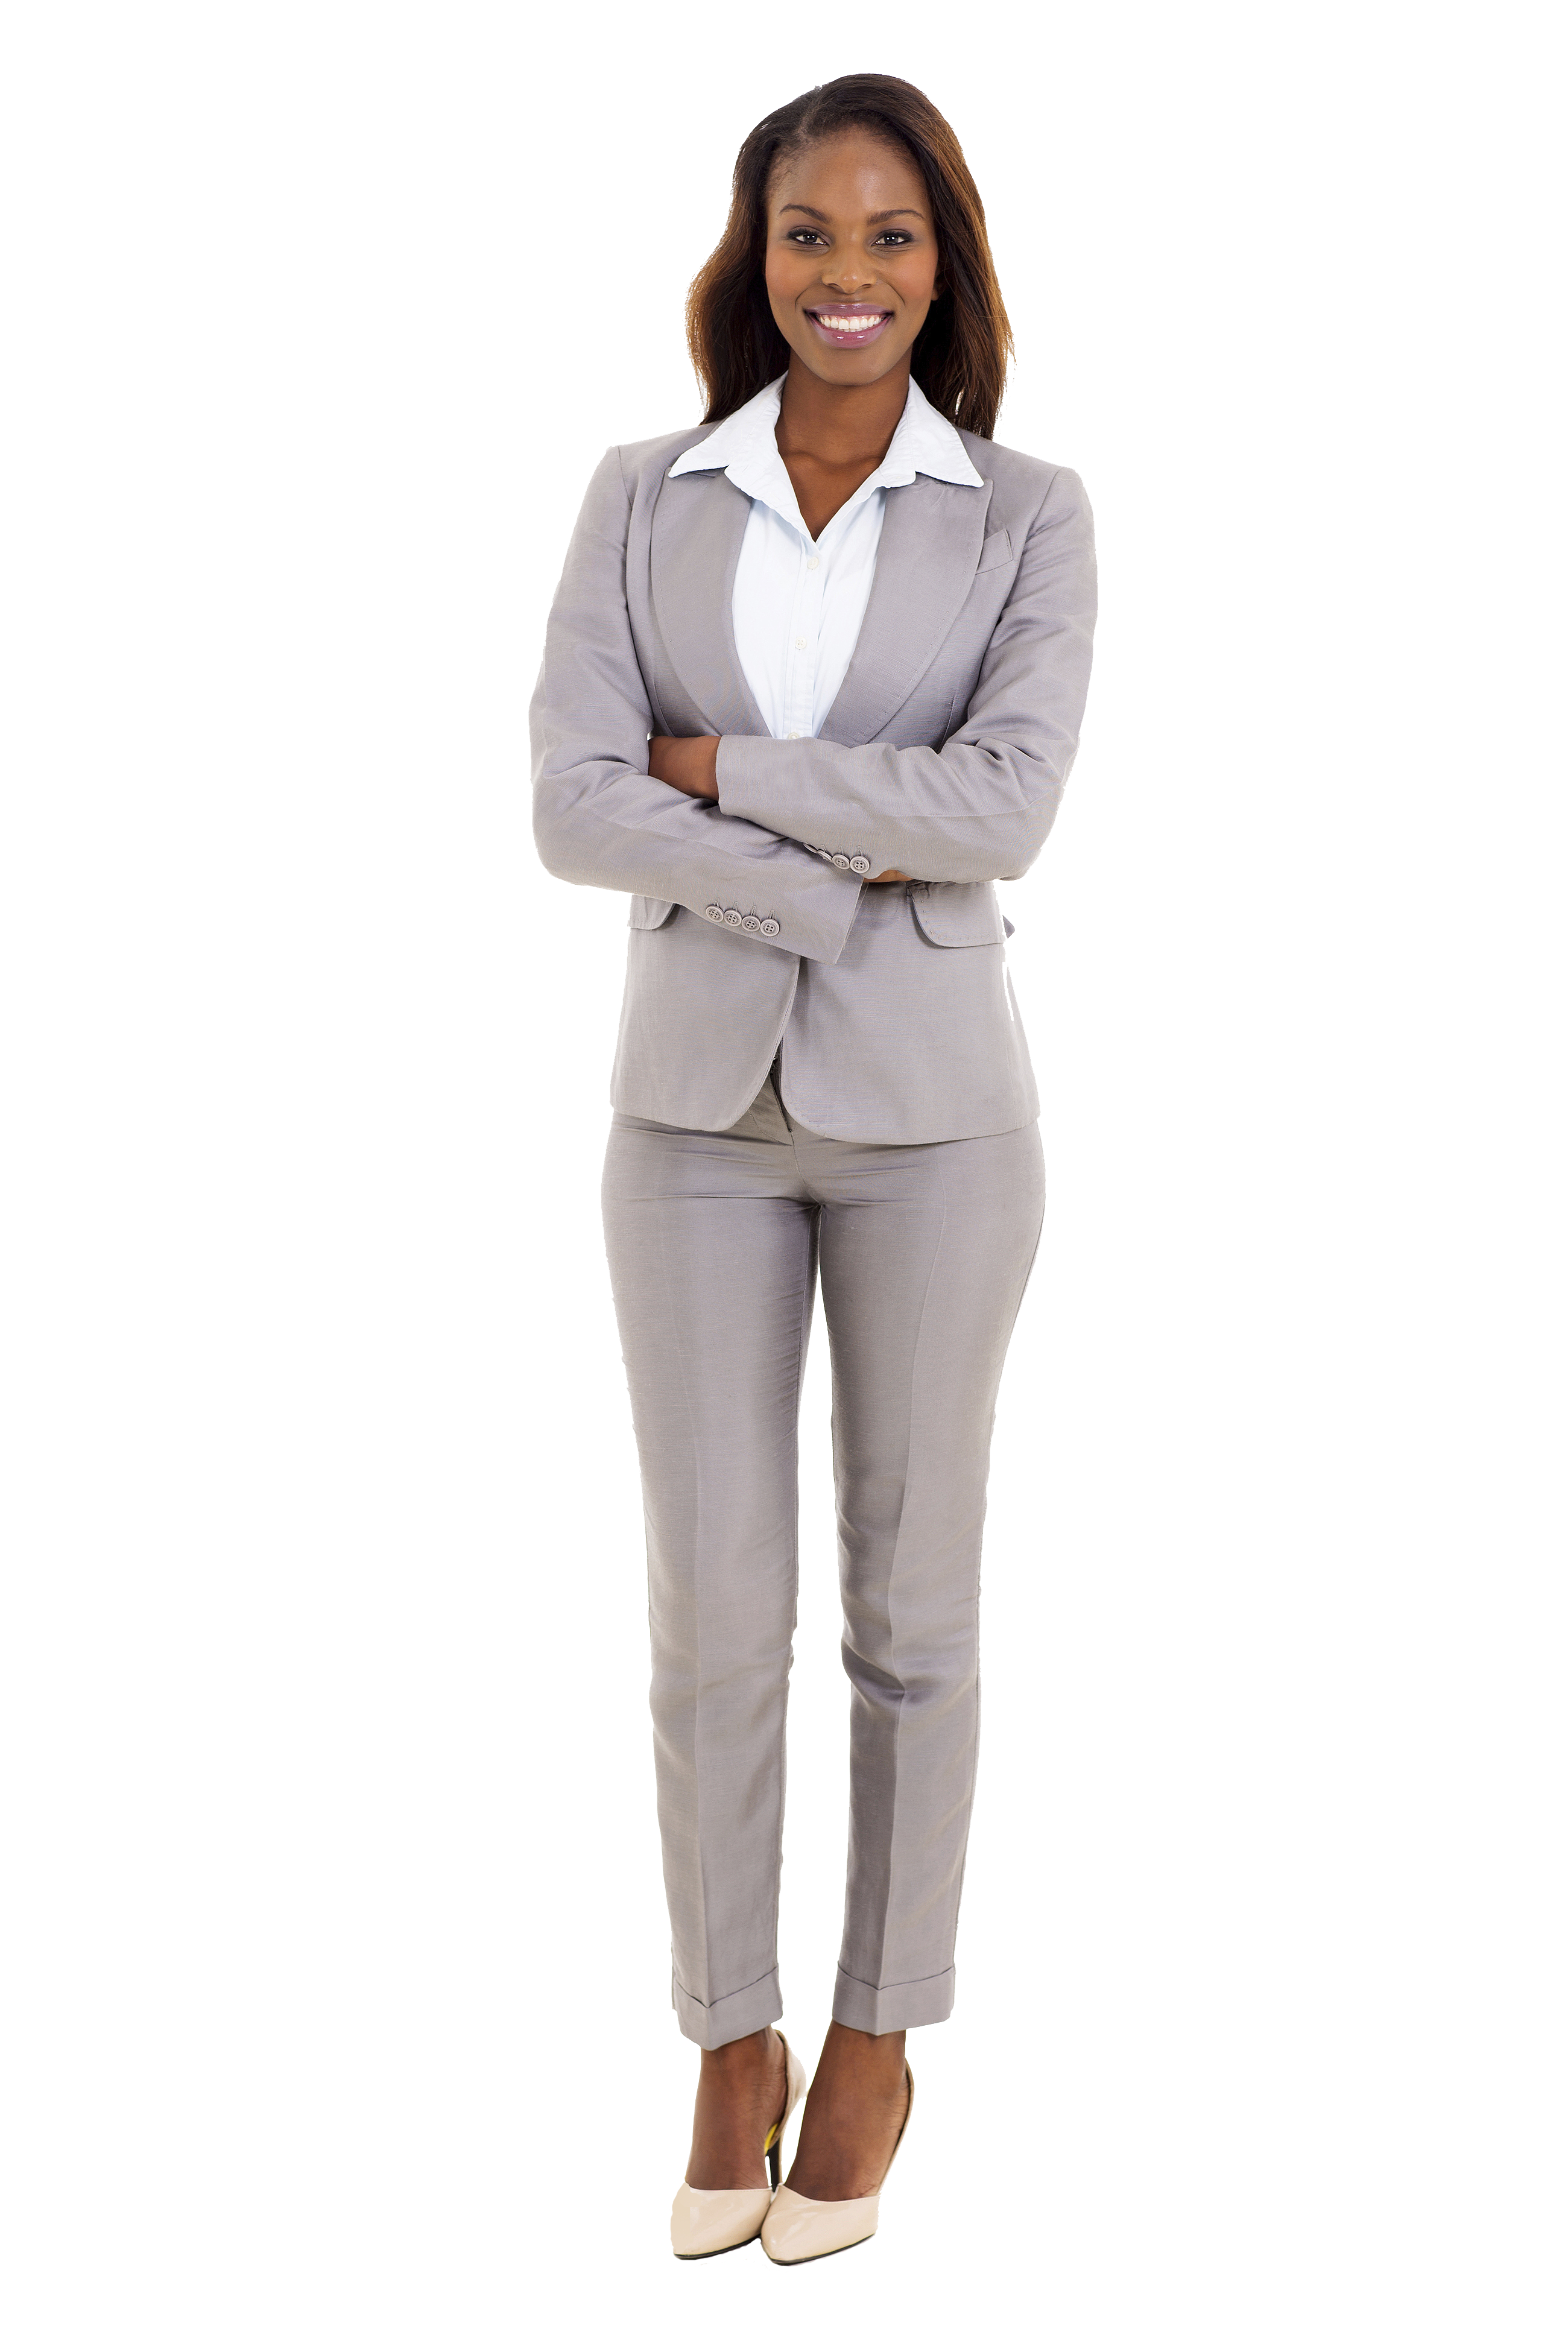 Black woman png. Index of wp content